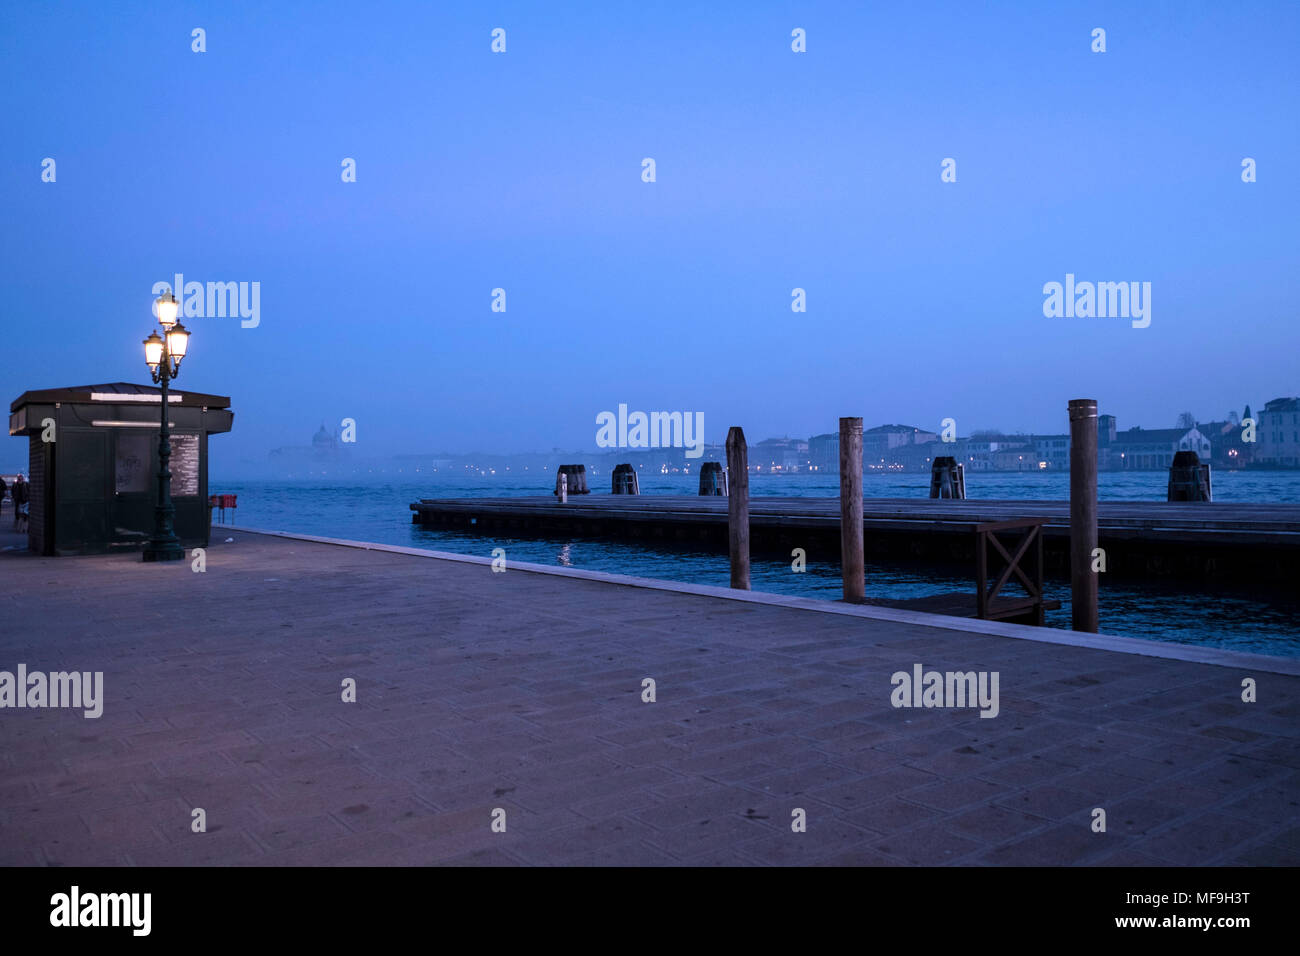 Promenade along San Basilio in Venice, Italy, during blue hour - Stock Image